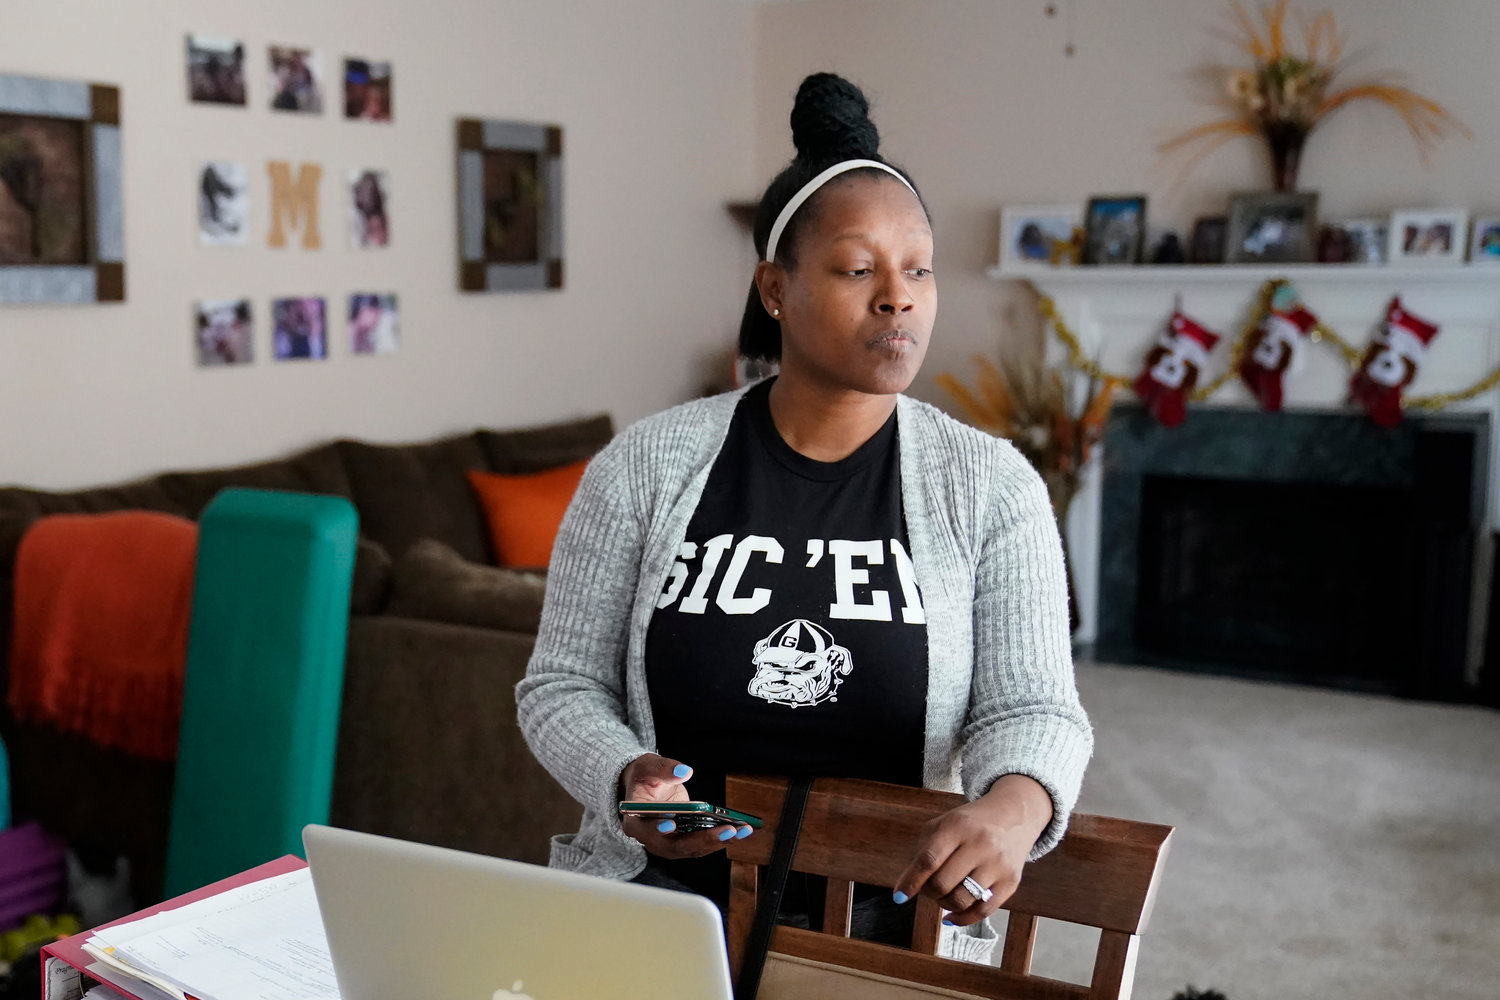 Shanita Matthews pauses as she speaks in her home, Wednesday, Dec. 23, 2020, in Suwanee, Ga. Matthews had to close her wedding business because of the coronavirus outbreak. (AP Photo/John Bazemore)